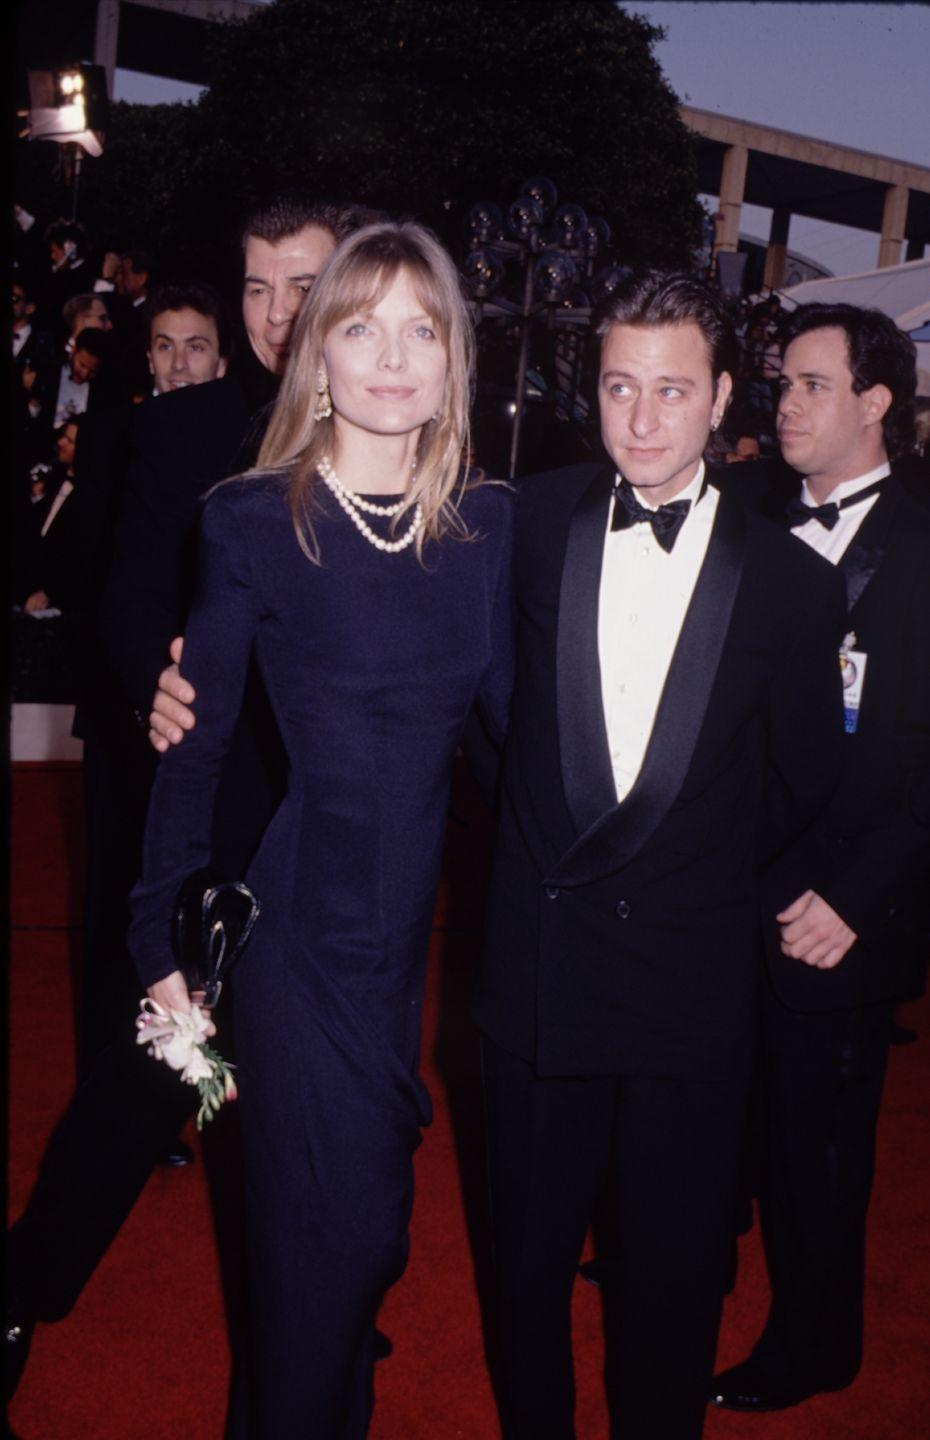 <p>Michelle's navy blue gown, pearls and (inexplicable) flowers in hand were a vision of grace. She rocked the Oscar's that year with a nomination for Best Actress in <em>The Fabulous Baker Boys.</em></p>